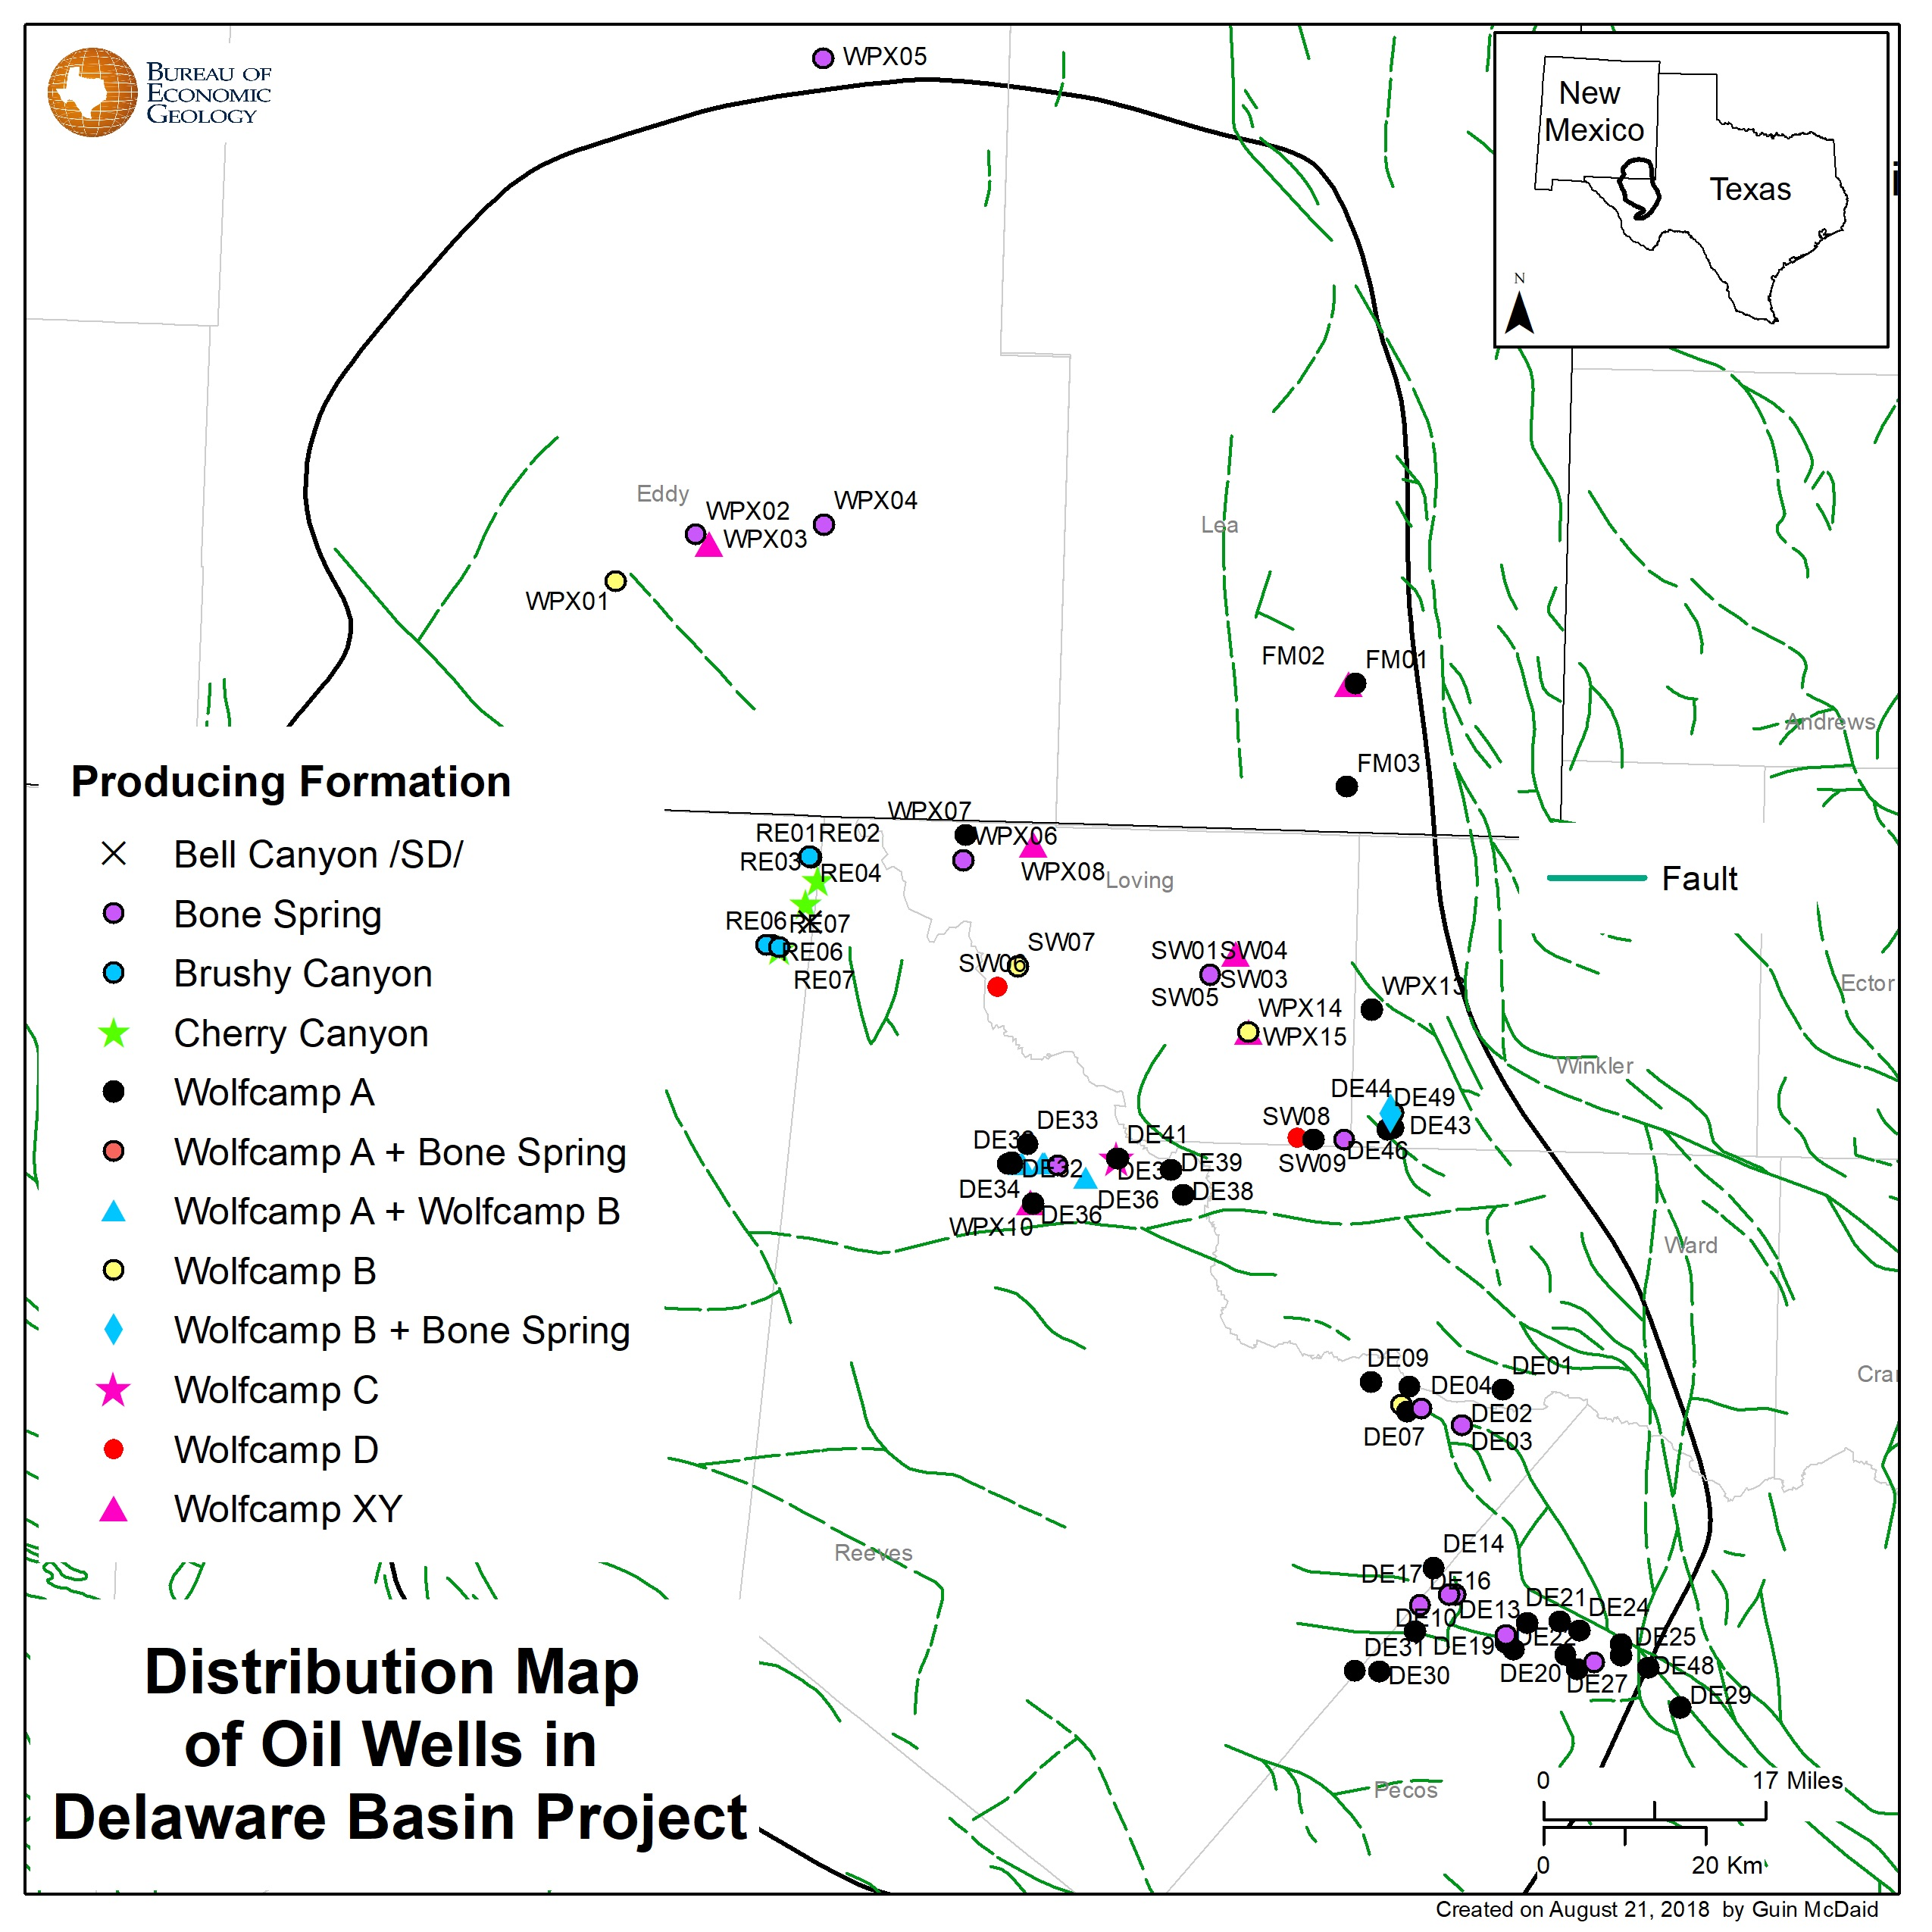 Distribution map of oil wells in Delaware Basin Project